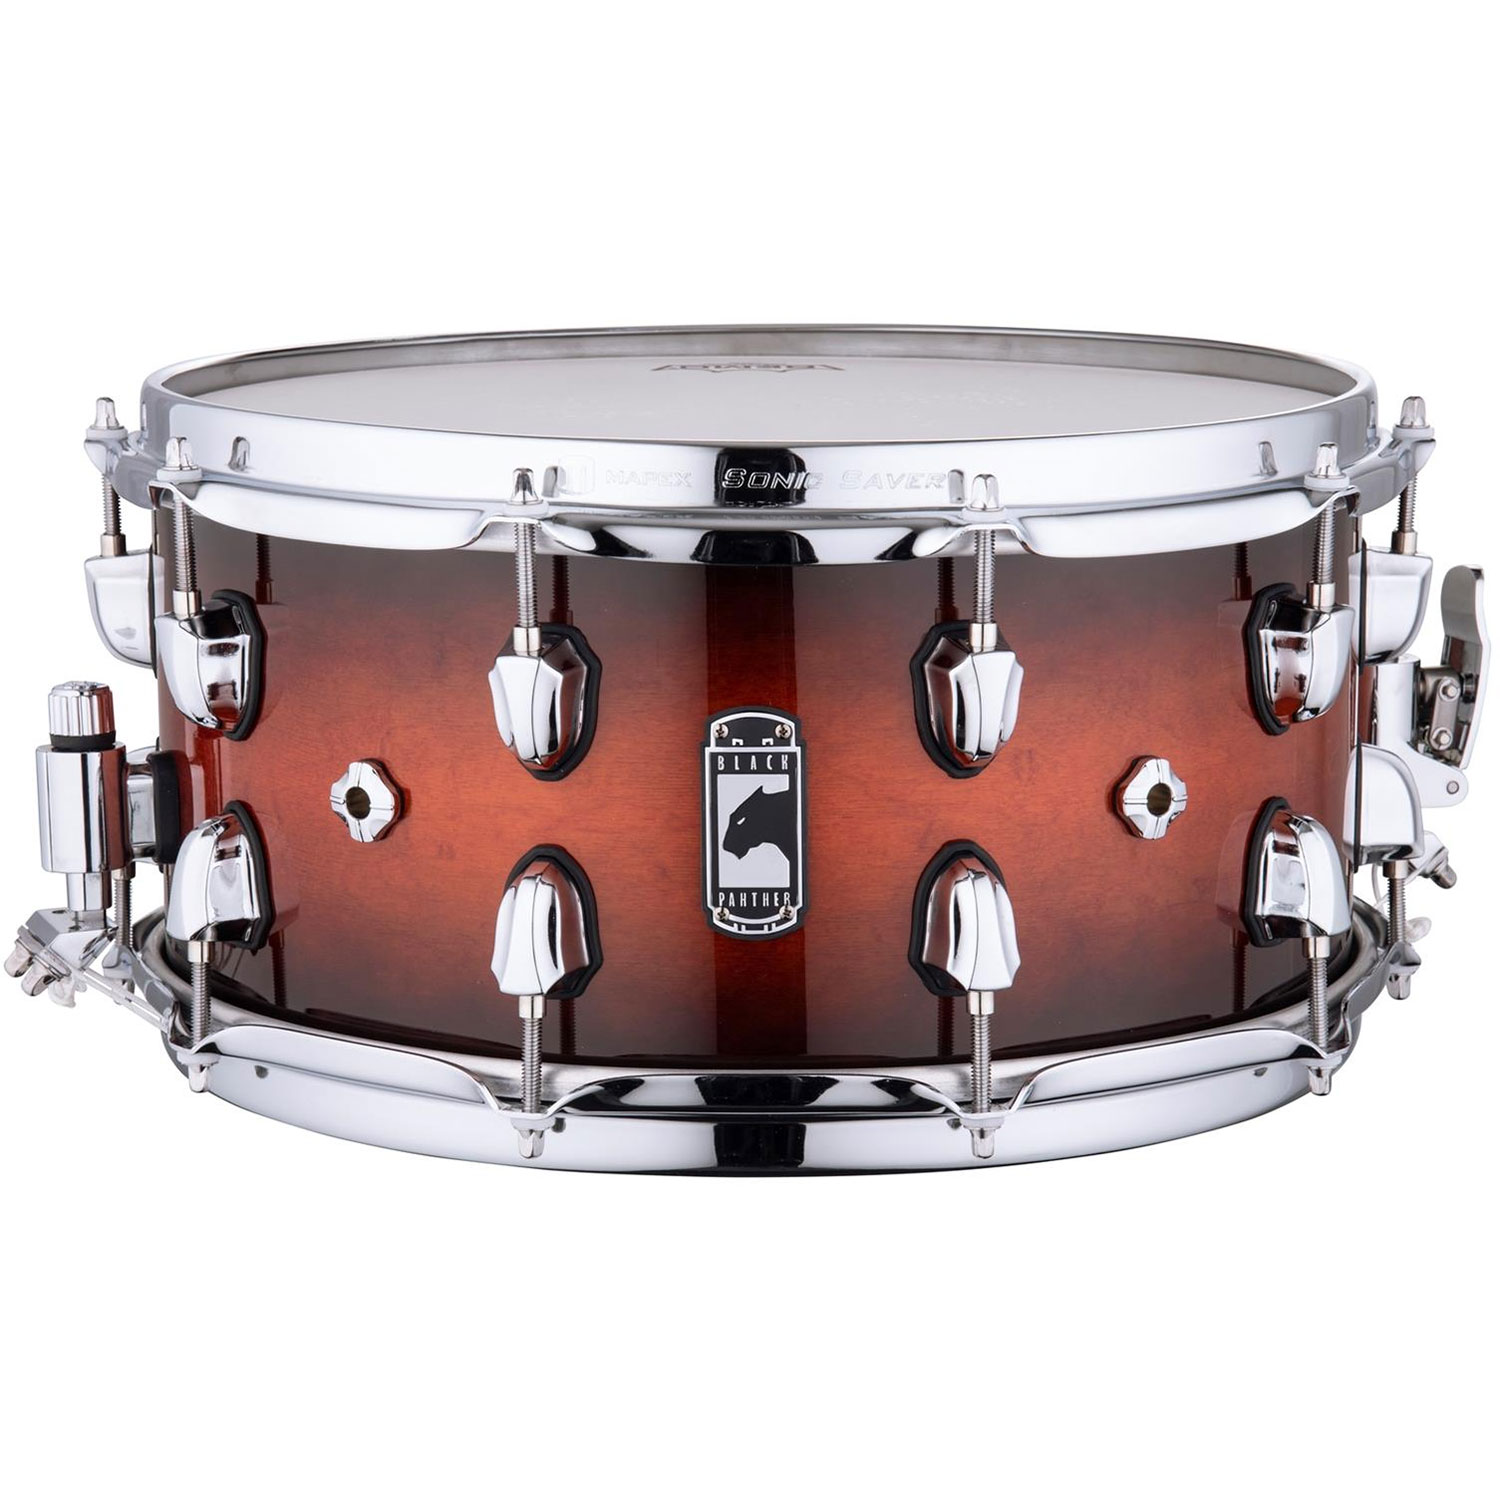 """Mapex 14"""" x 7"""" Black Panther """"Solidus"""" 11-Ply Maple Snare Drum"""